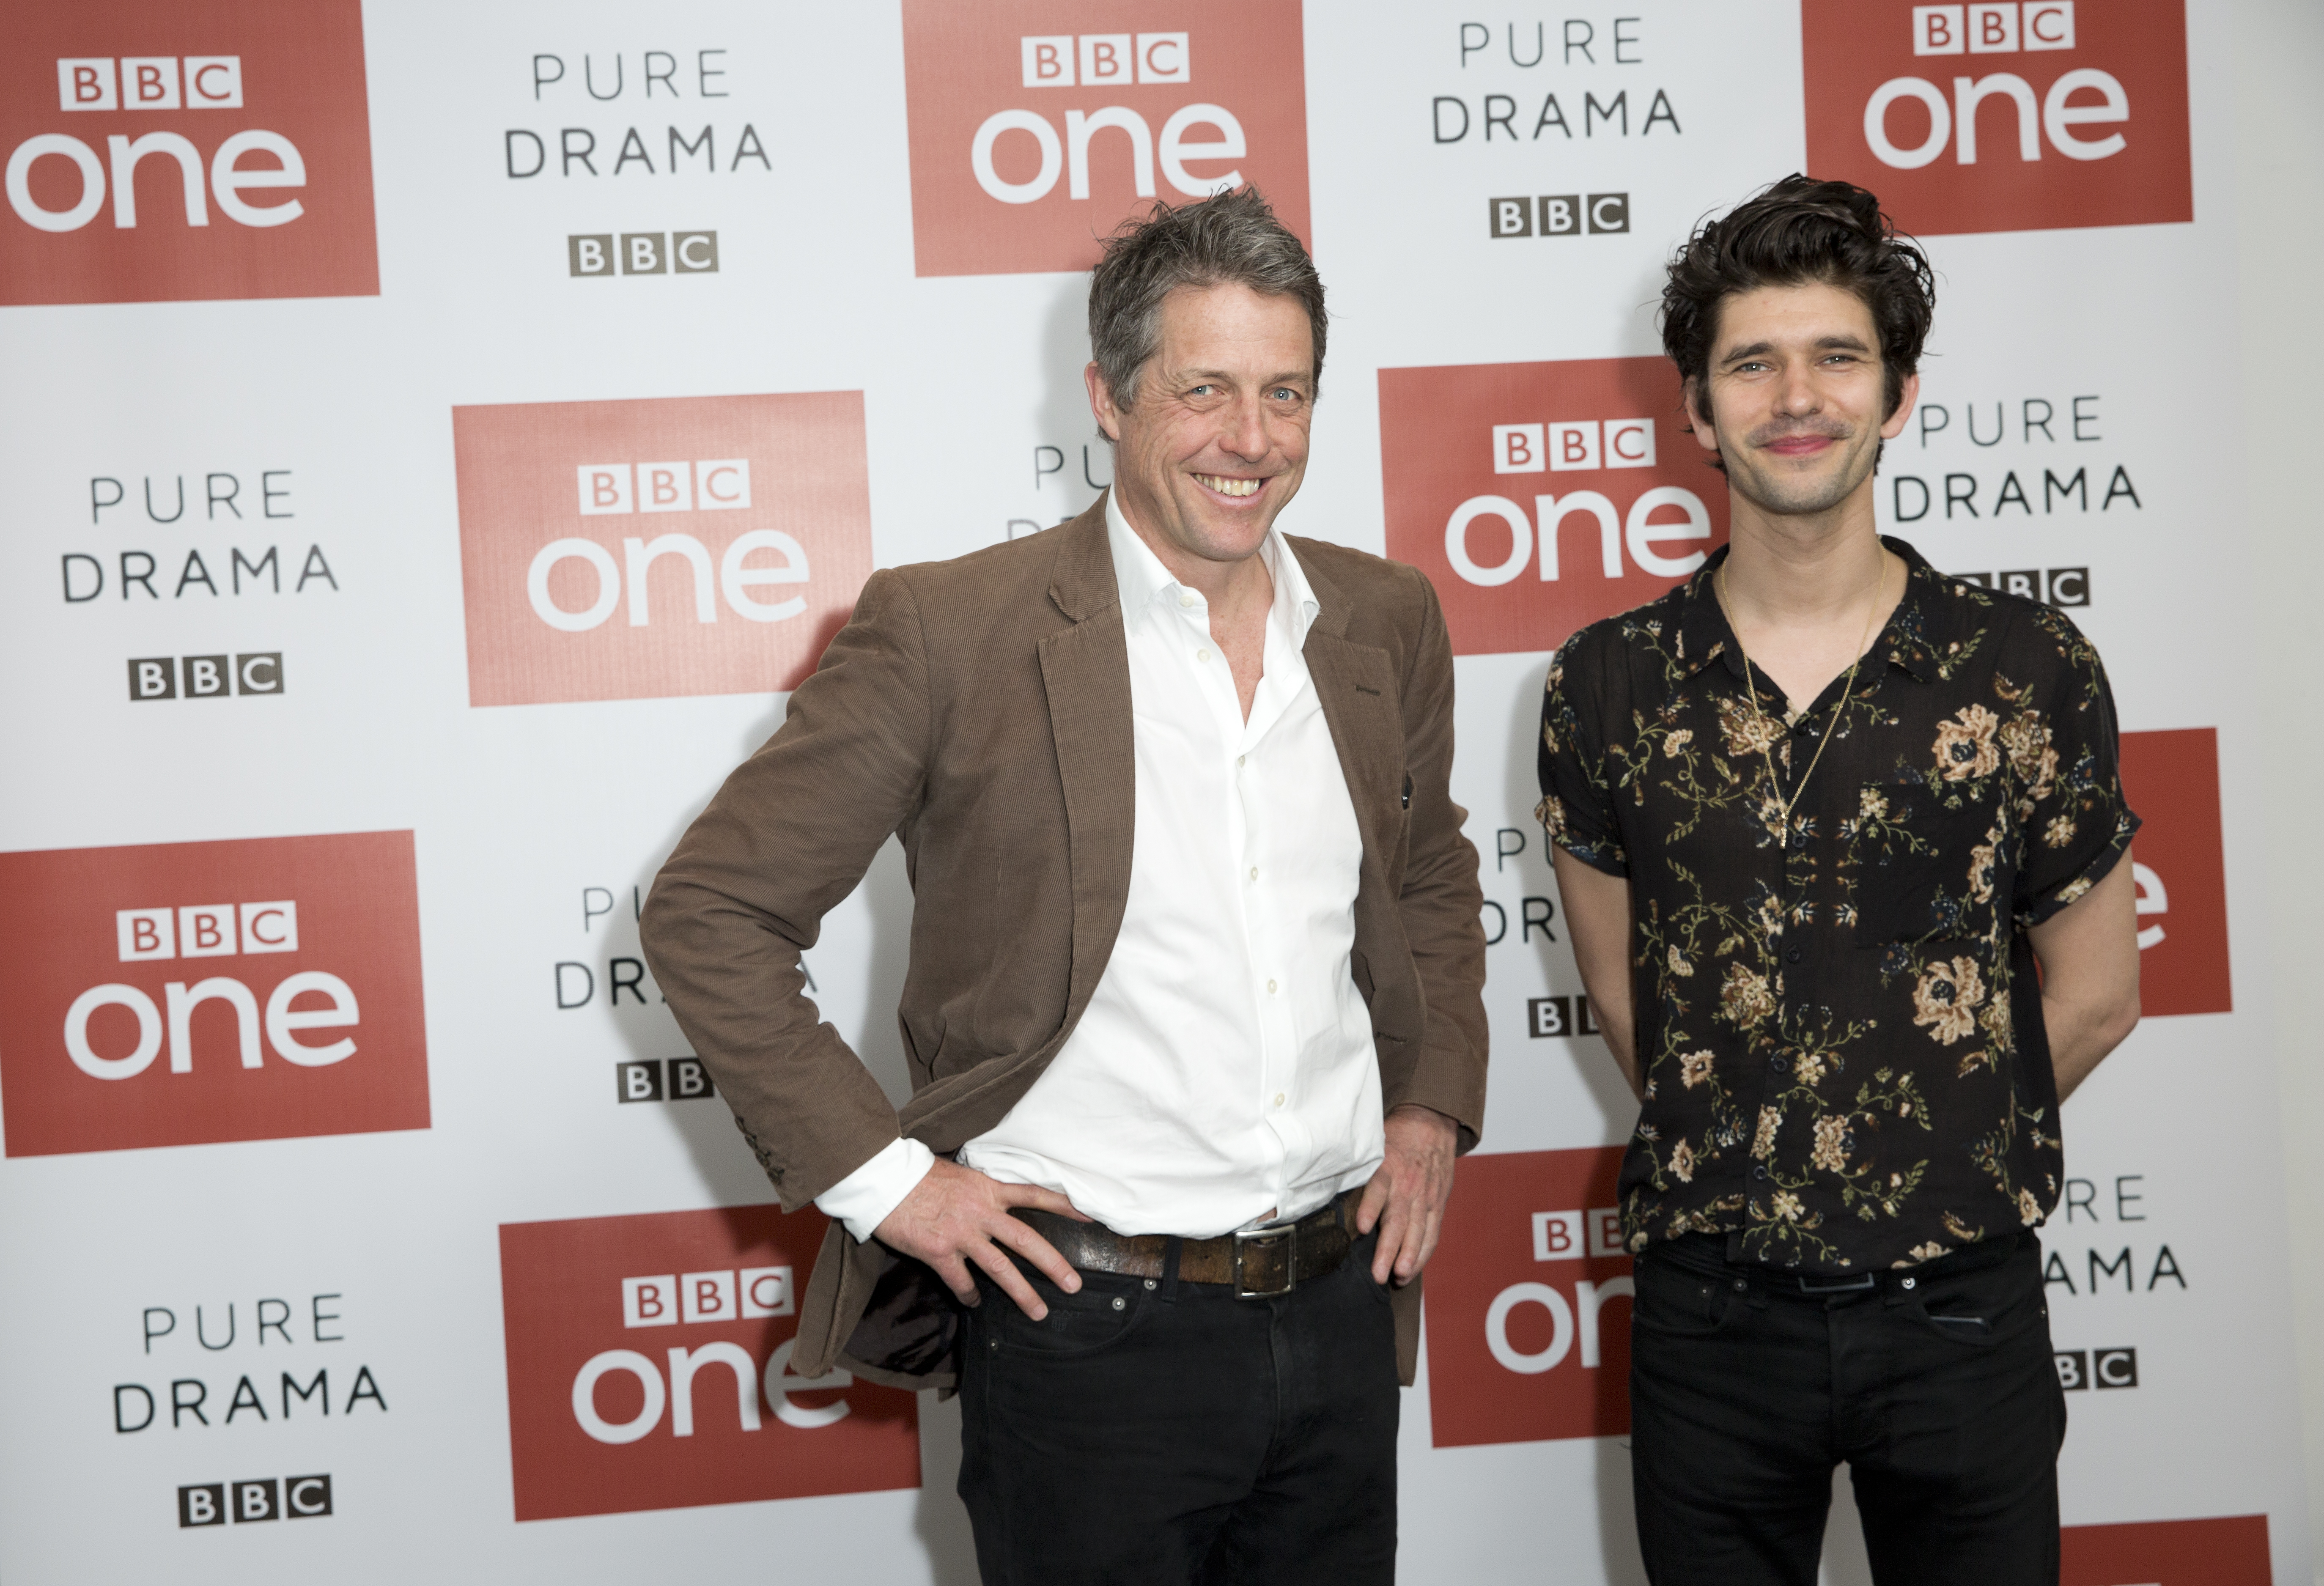 The original series starred Hugh Grant as Liberal party leader Jeremy Thorpe and Ben Whishaw as his lover Norman